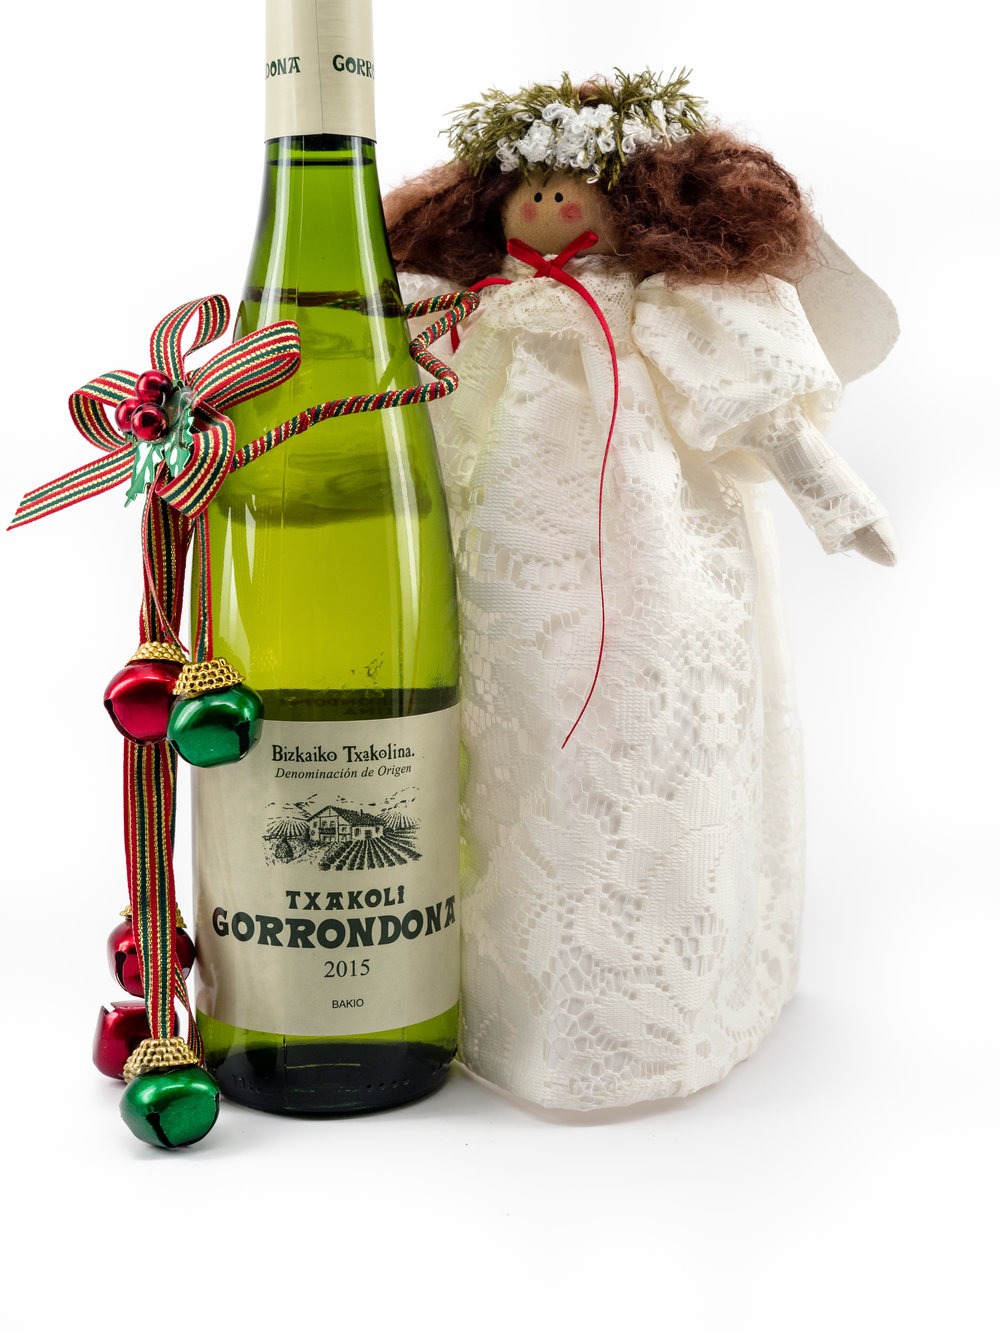 Musings by the Glass - Mele Kalikimaka - Hawaiian Christmas Music and Wine Pairings - Angel and Gorrondona from Basque Spain